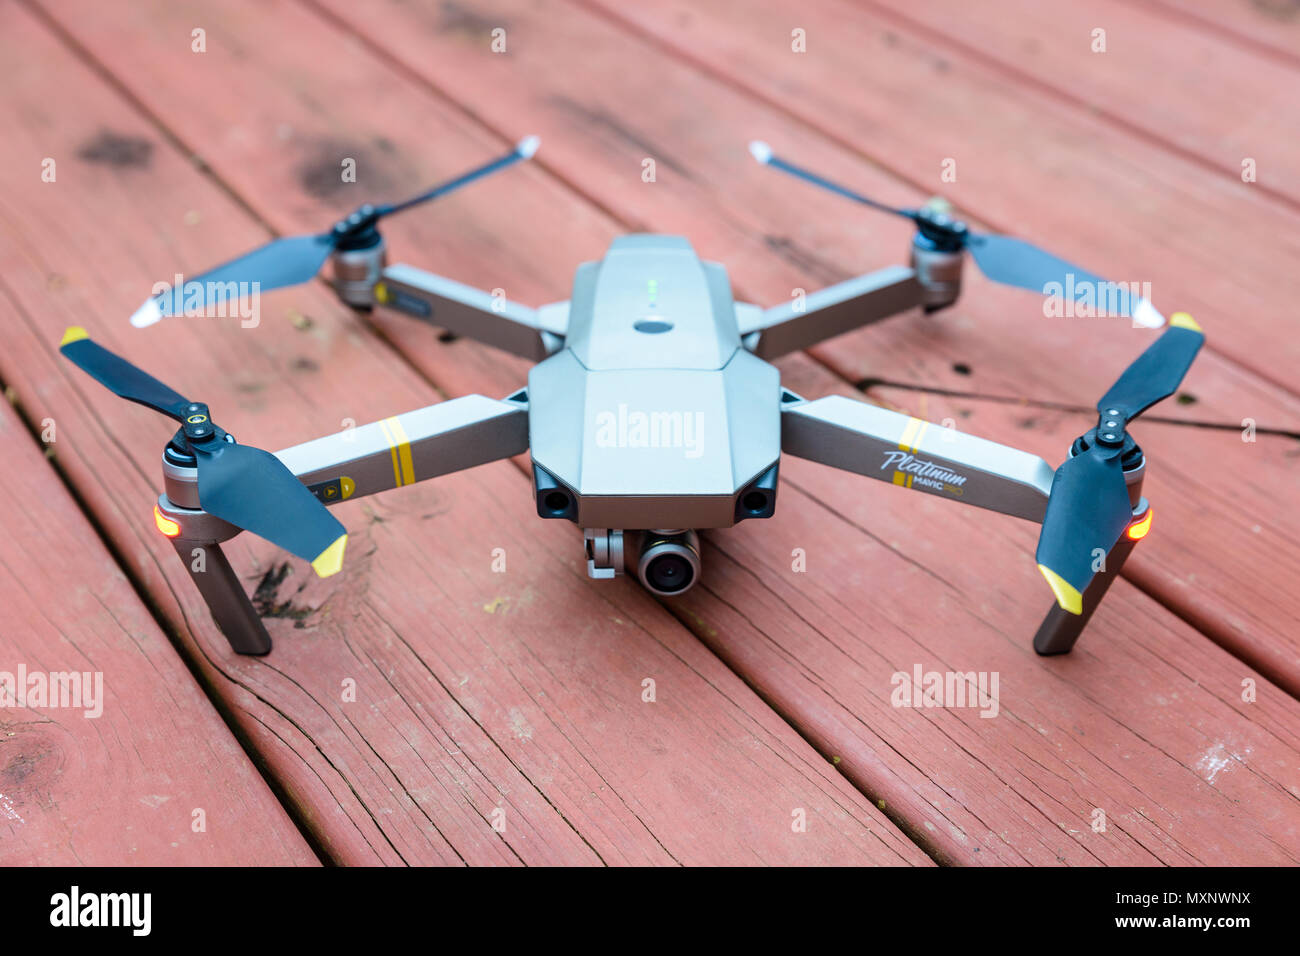 WILLIAMSBURG, VIRGINIA, USA - CIRCA DECEMBER 2017: A DJI Mavic Pro Platinum drone. - Stock Image